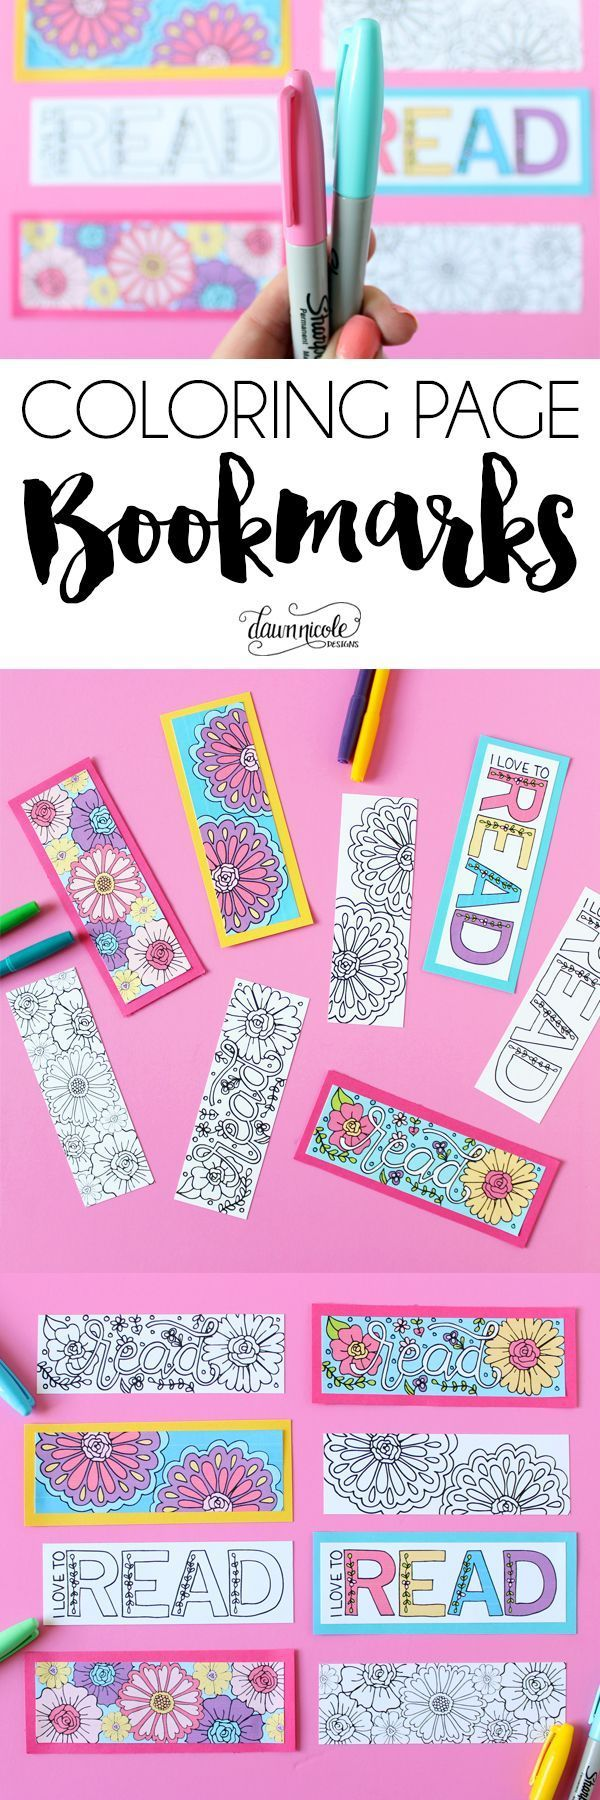 Fancy swear words coloring book - Free Summer Coloring Page Bookmarks Color Your Own Or Grab The Already Colored